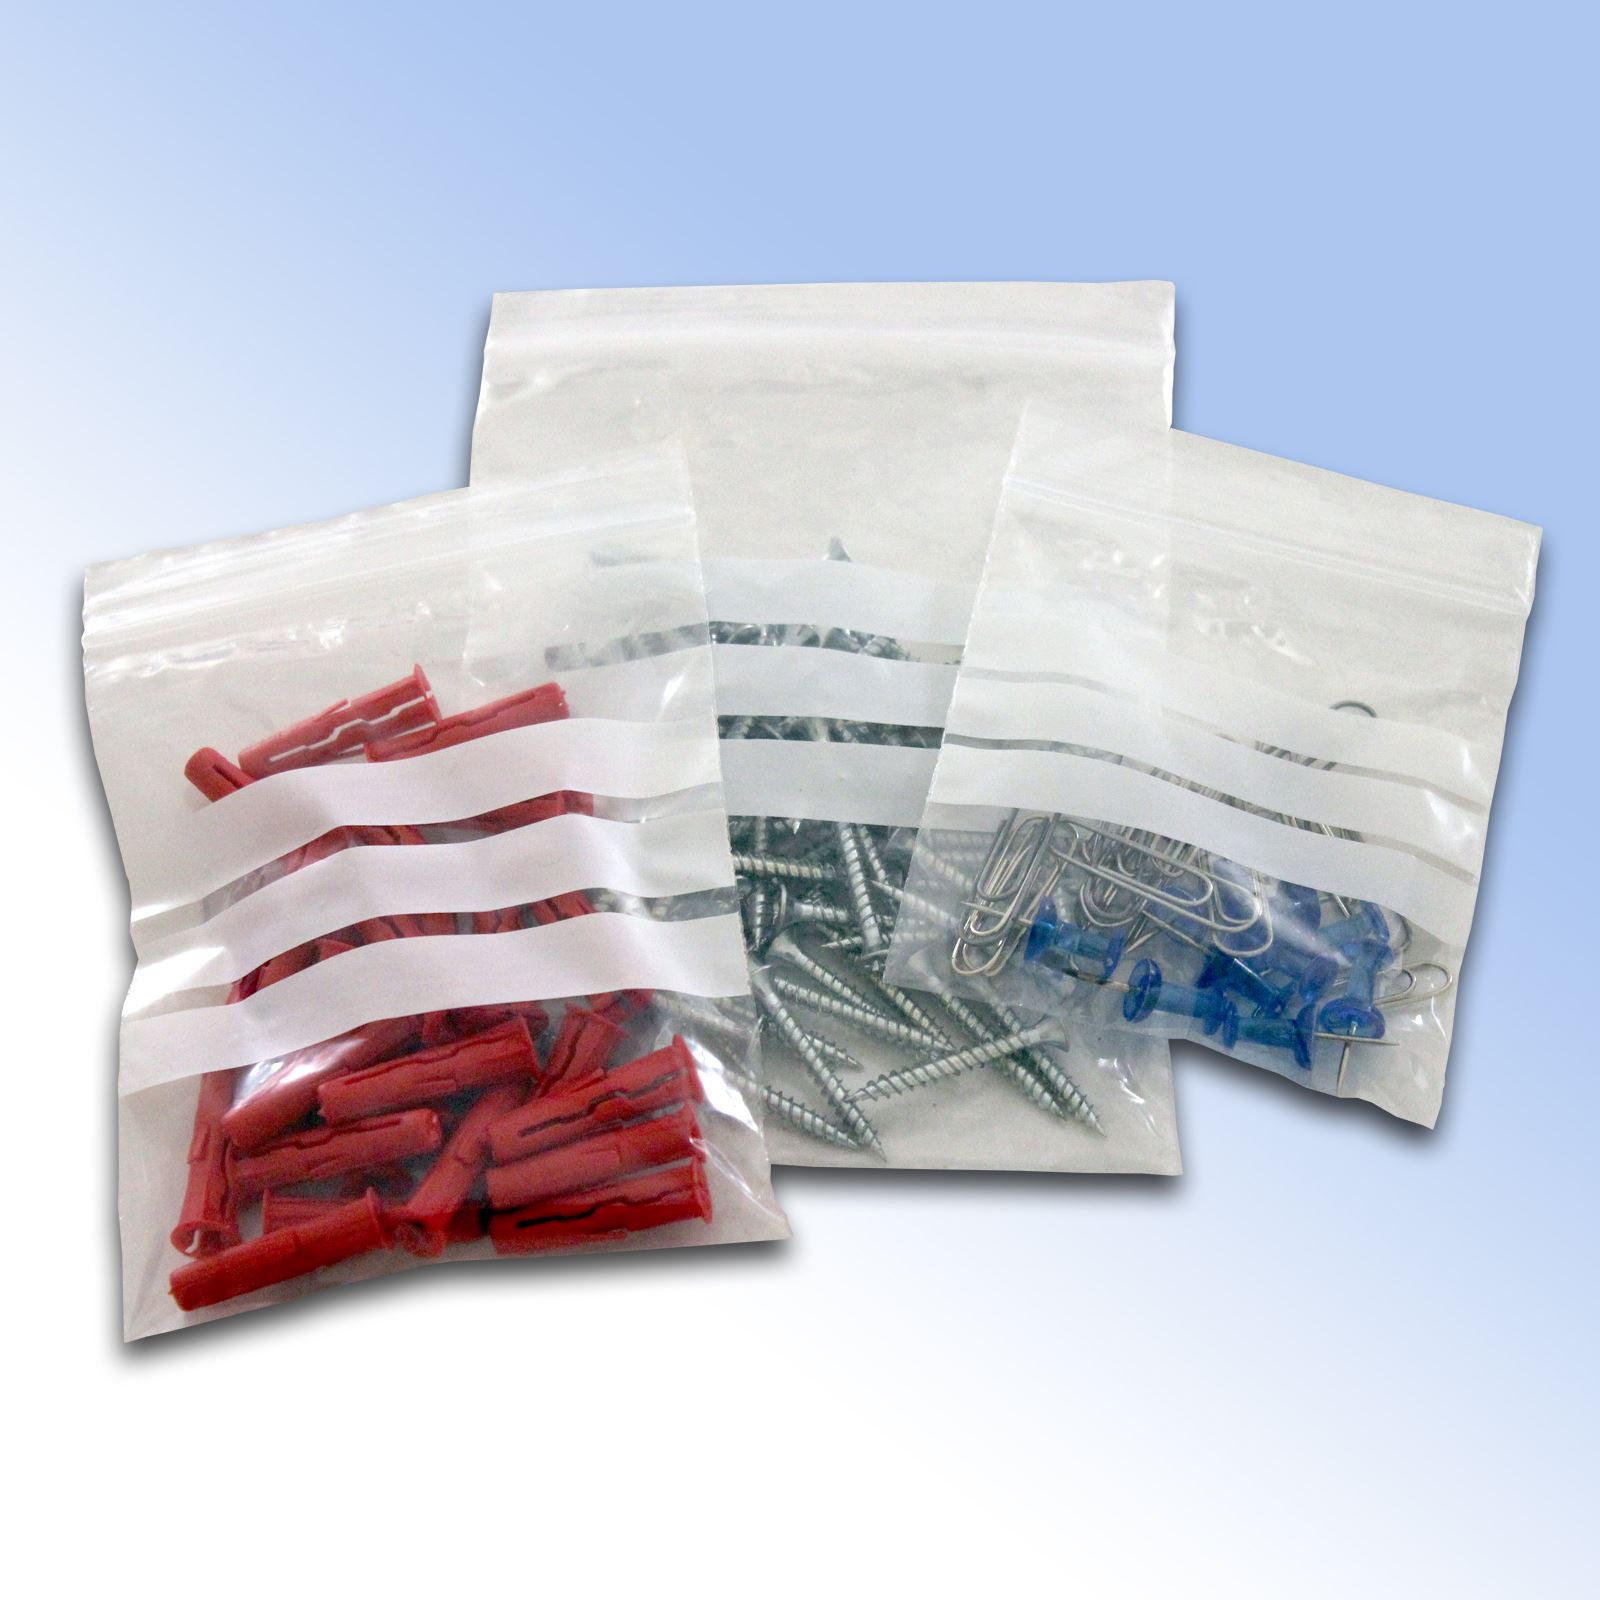 Plain-amp-Write-On-Grip-Seal-Bags-Self-Seal-Resealable-Zip-Lock-Bags-All-Sizes